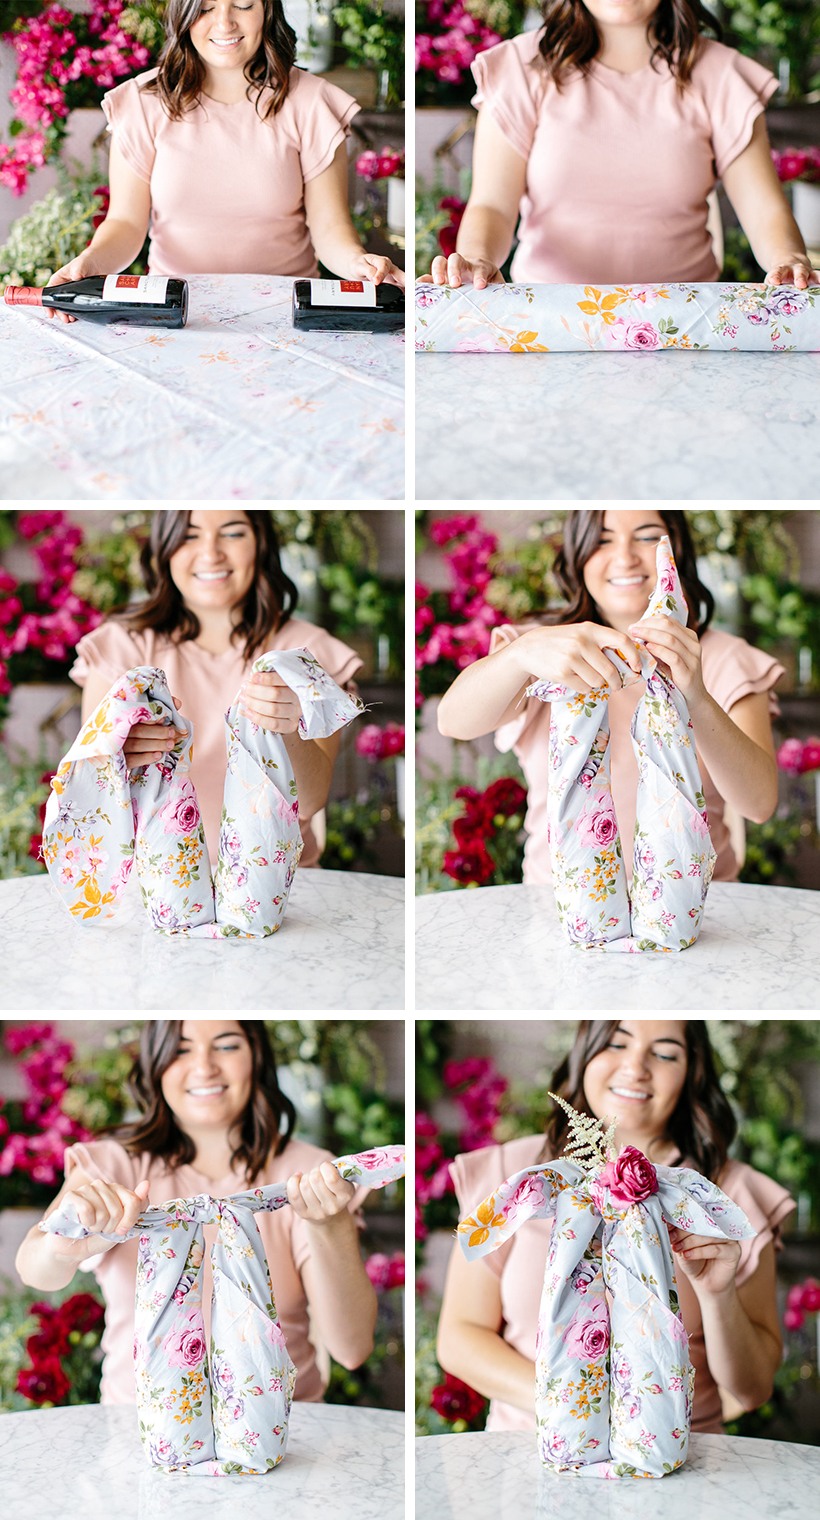 furoshiki wrapping, the prettiest way to wrap gifts with fabric!